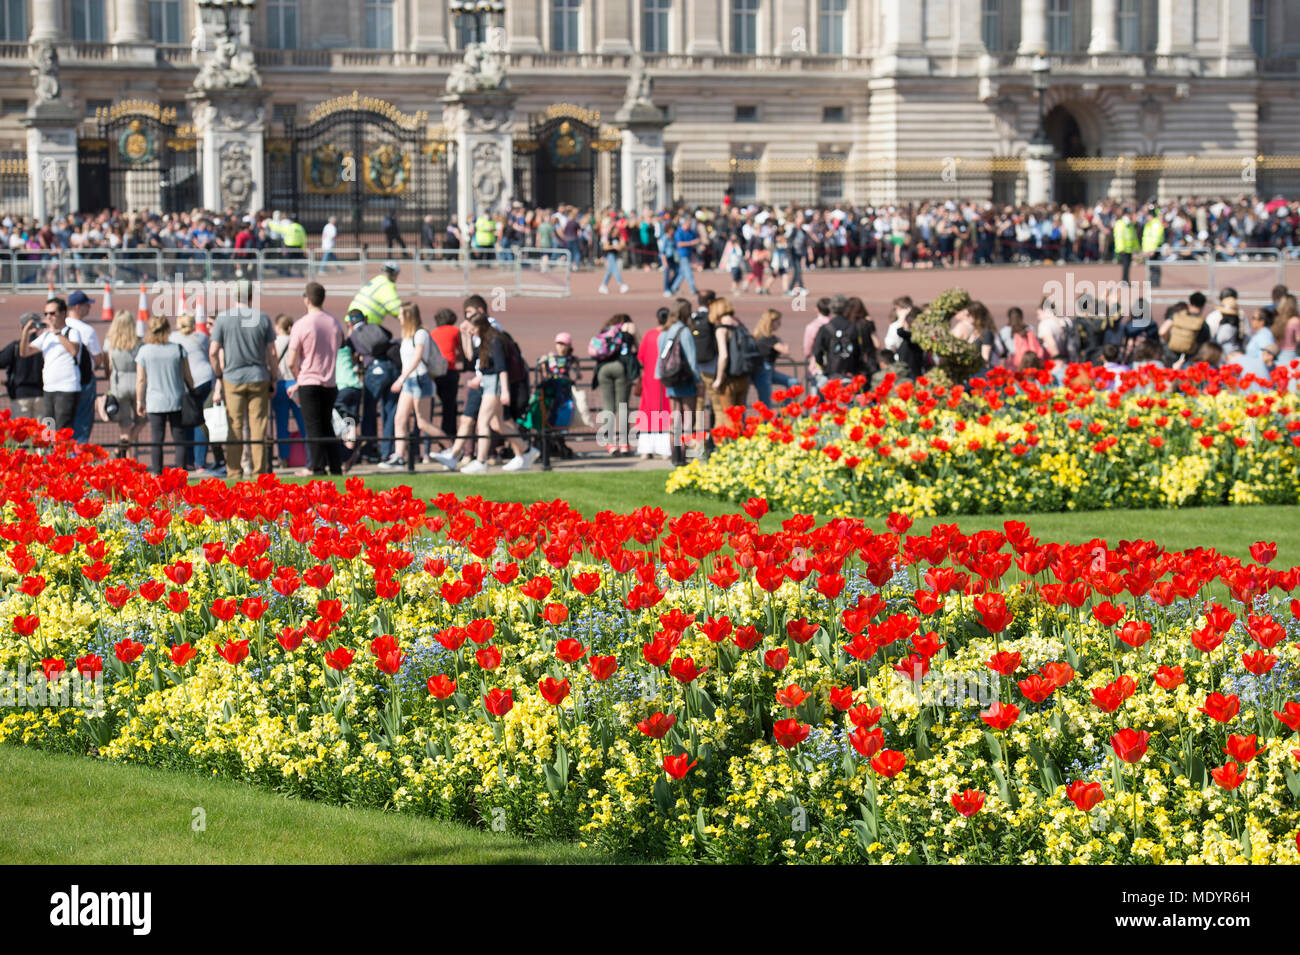 20 April 2018. Hot Spring weather in Green Park with tulips on display outside Buckingham Palace, London, UK - Stock Image